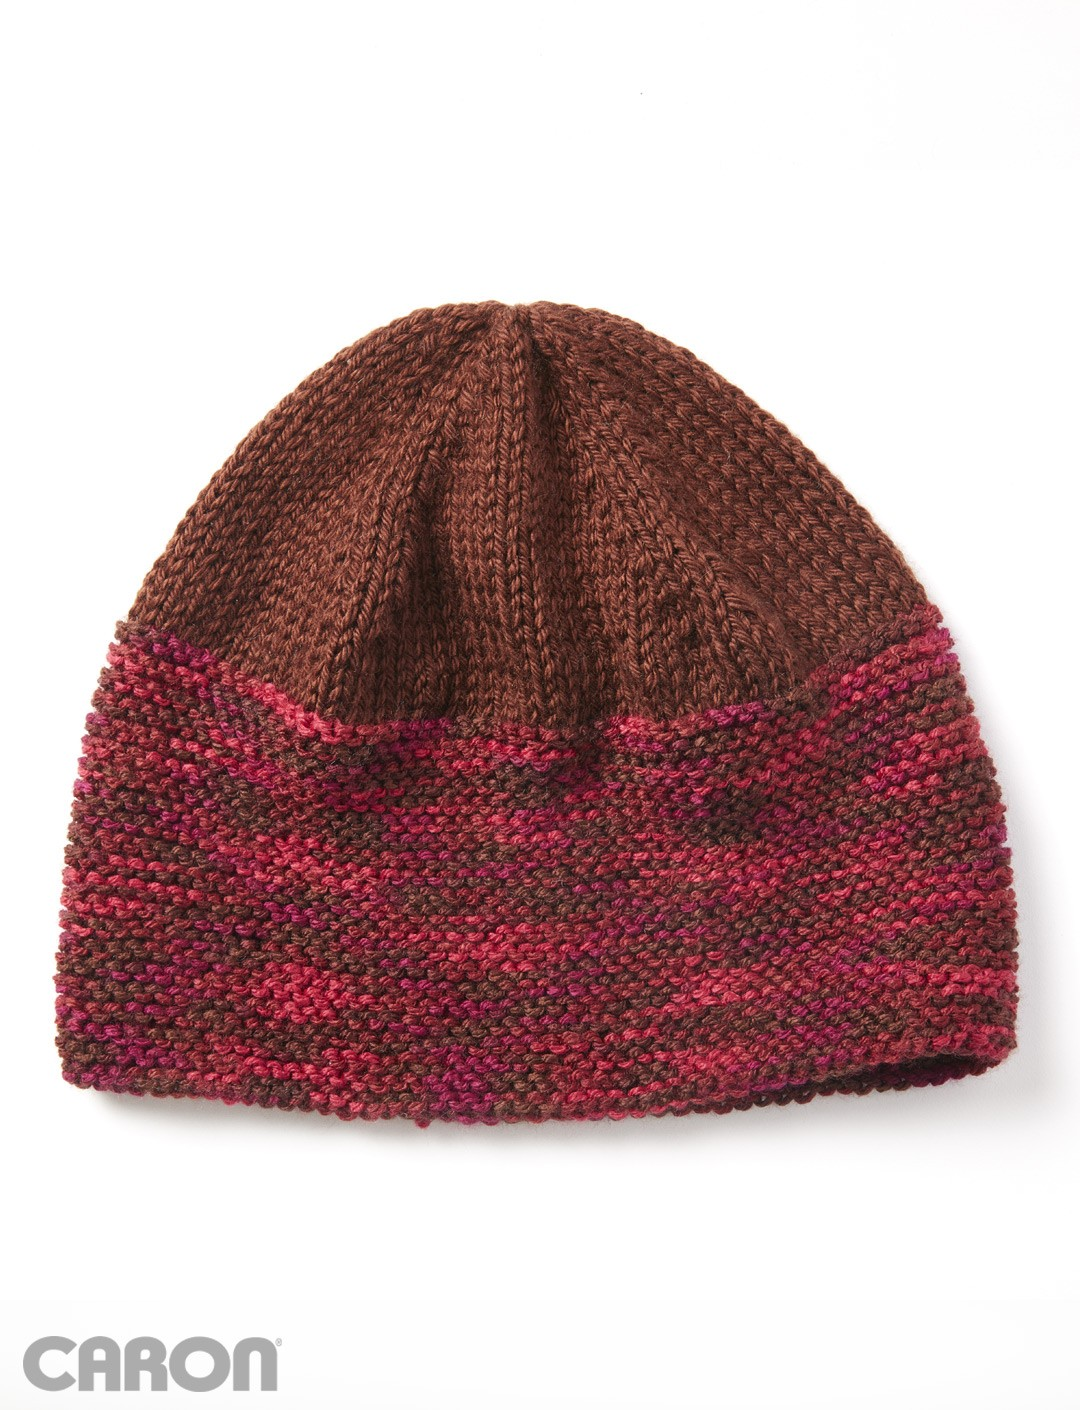 Caron Simply Soft Knitting Patterns : Caron Great Beginnings Hat, Knit Pattern Yarnspirations